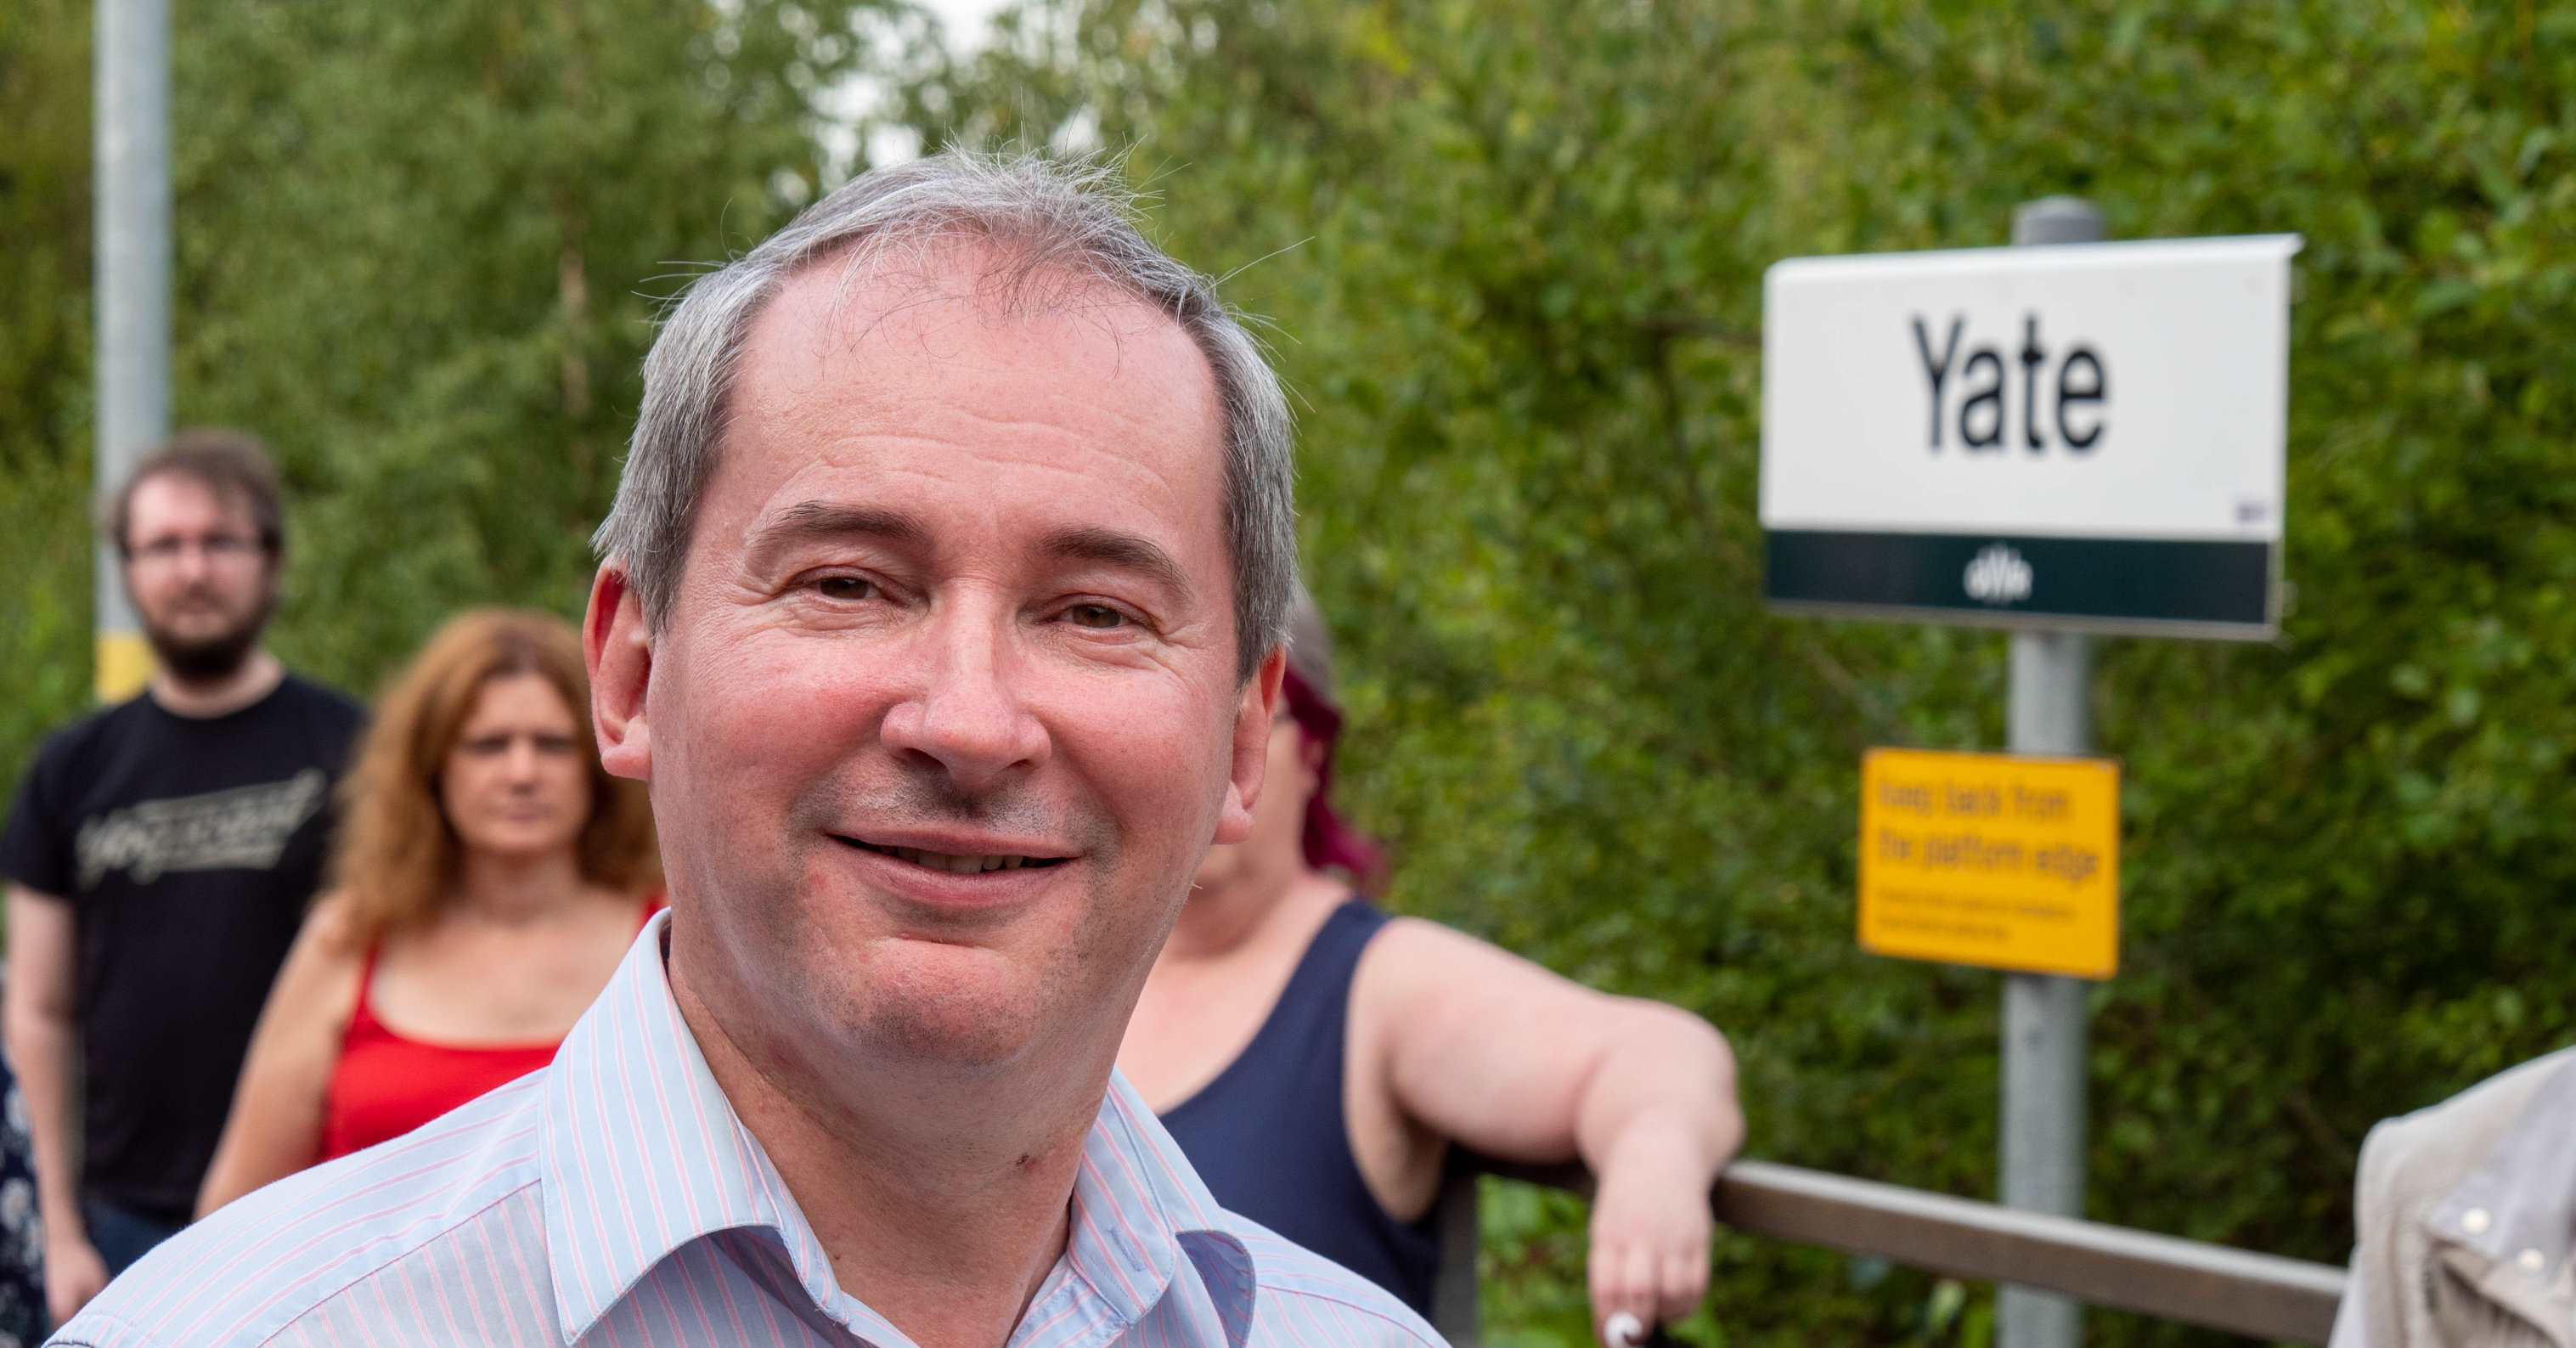 Liberal Democrats call for more trains for Yate